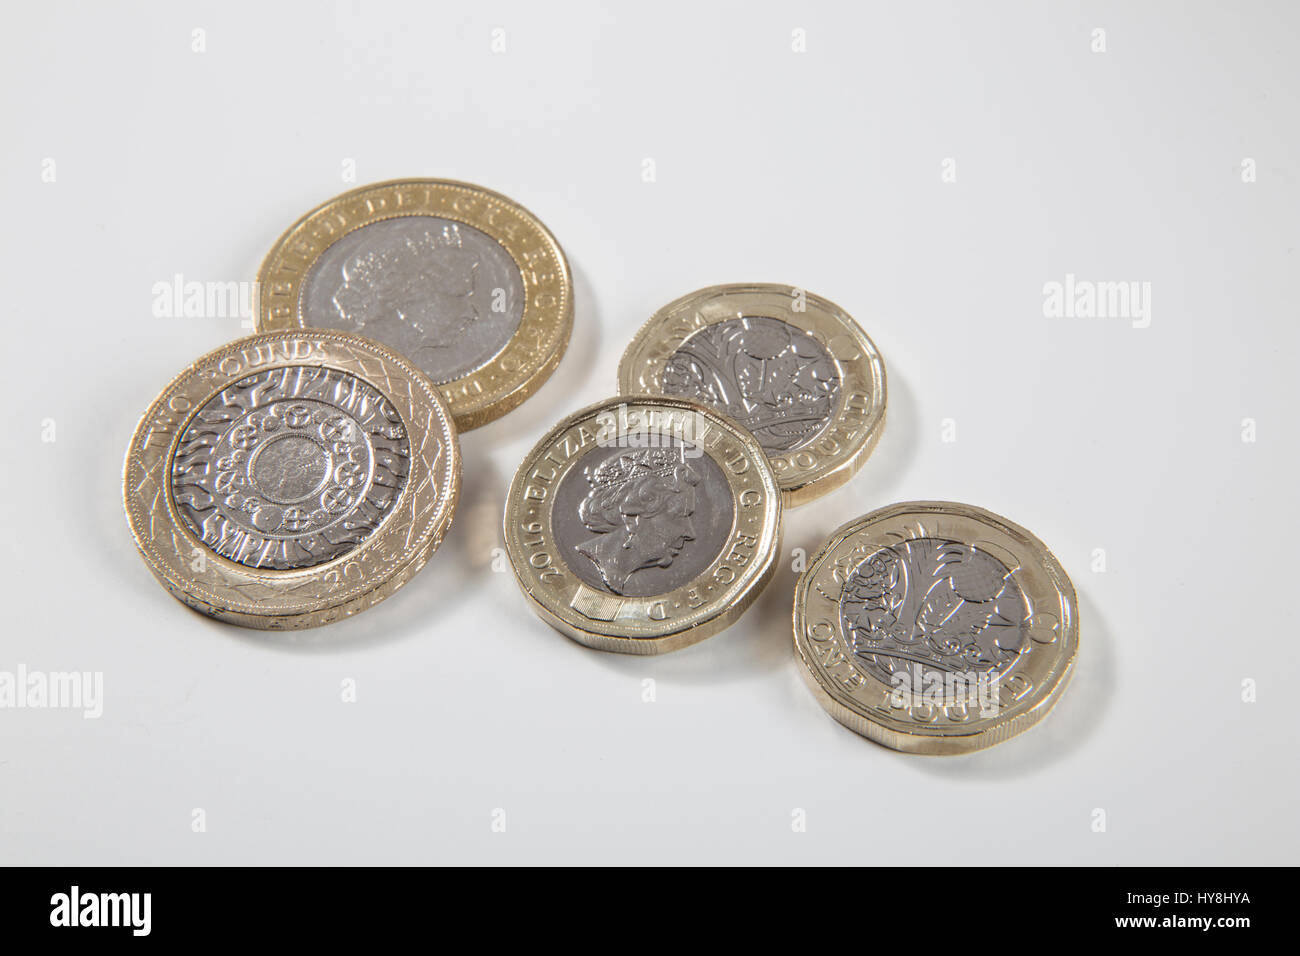 New Pound Coin 12 Sided Stockfotos New Pound Coin 12 Sided Bilder